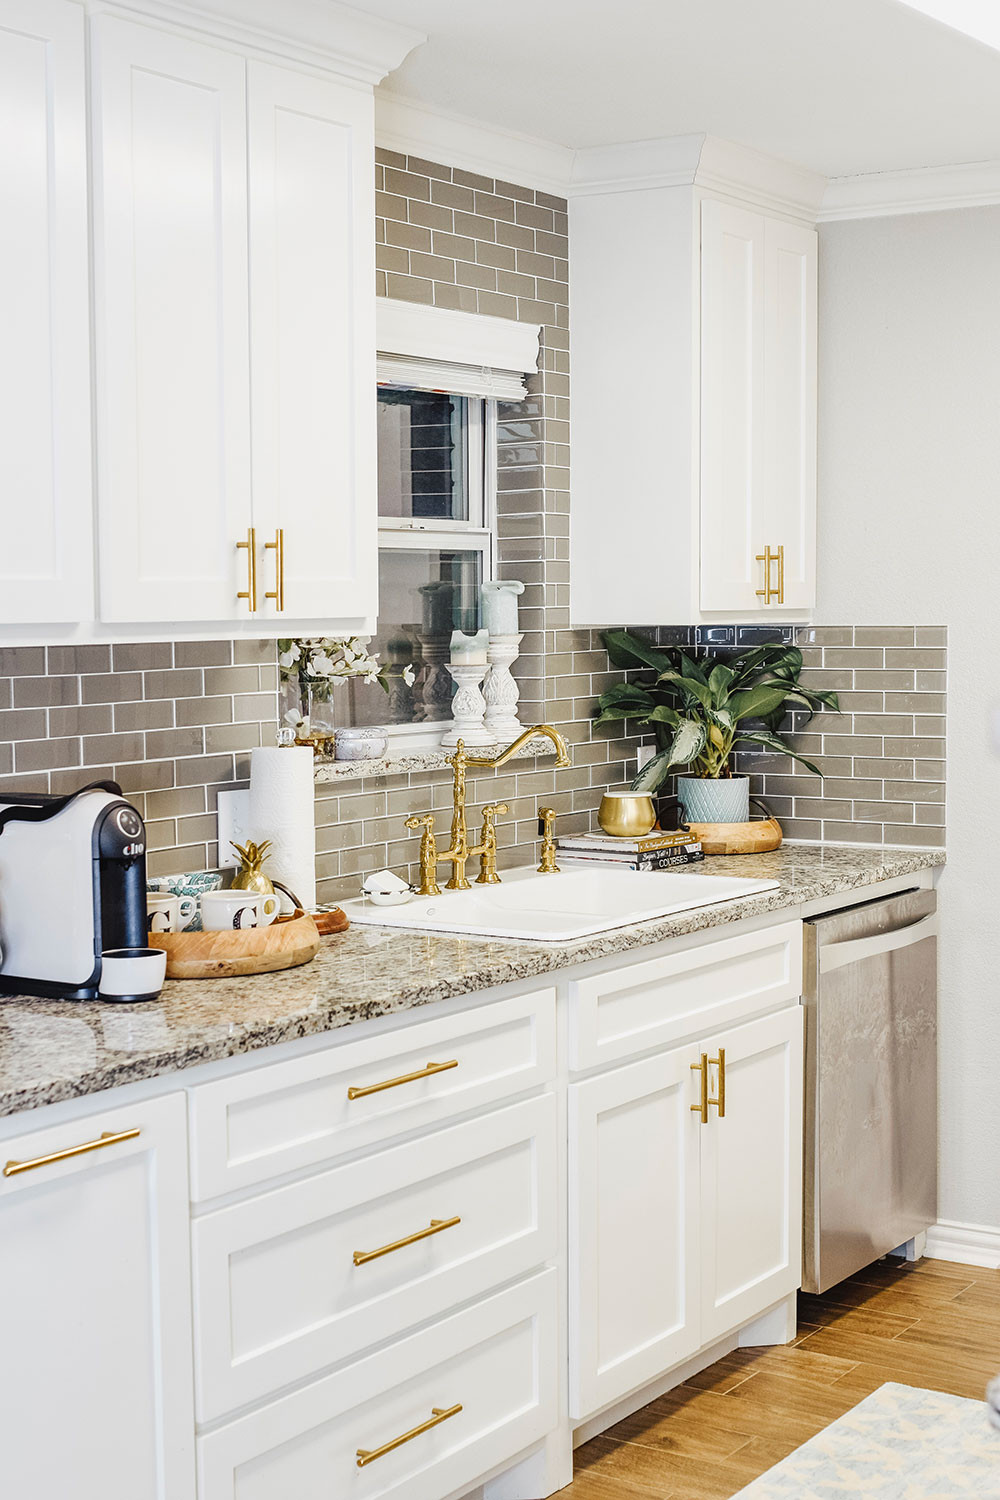 Small Kitchen Sink Cabinet Best Of Our Kitchen Sink Woes Our Small Kitchen Reveal